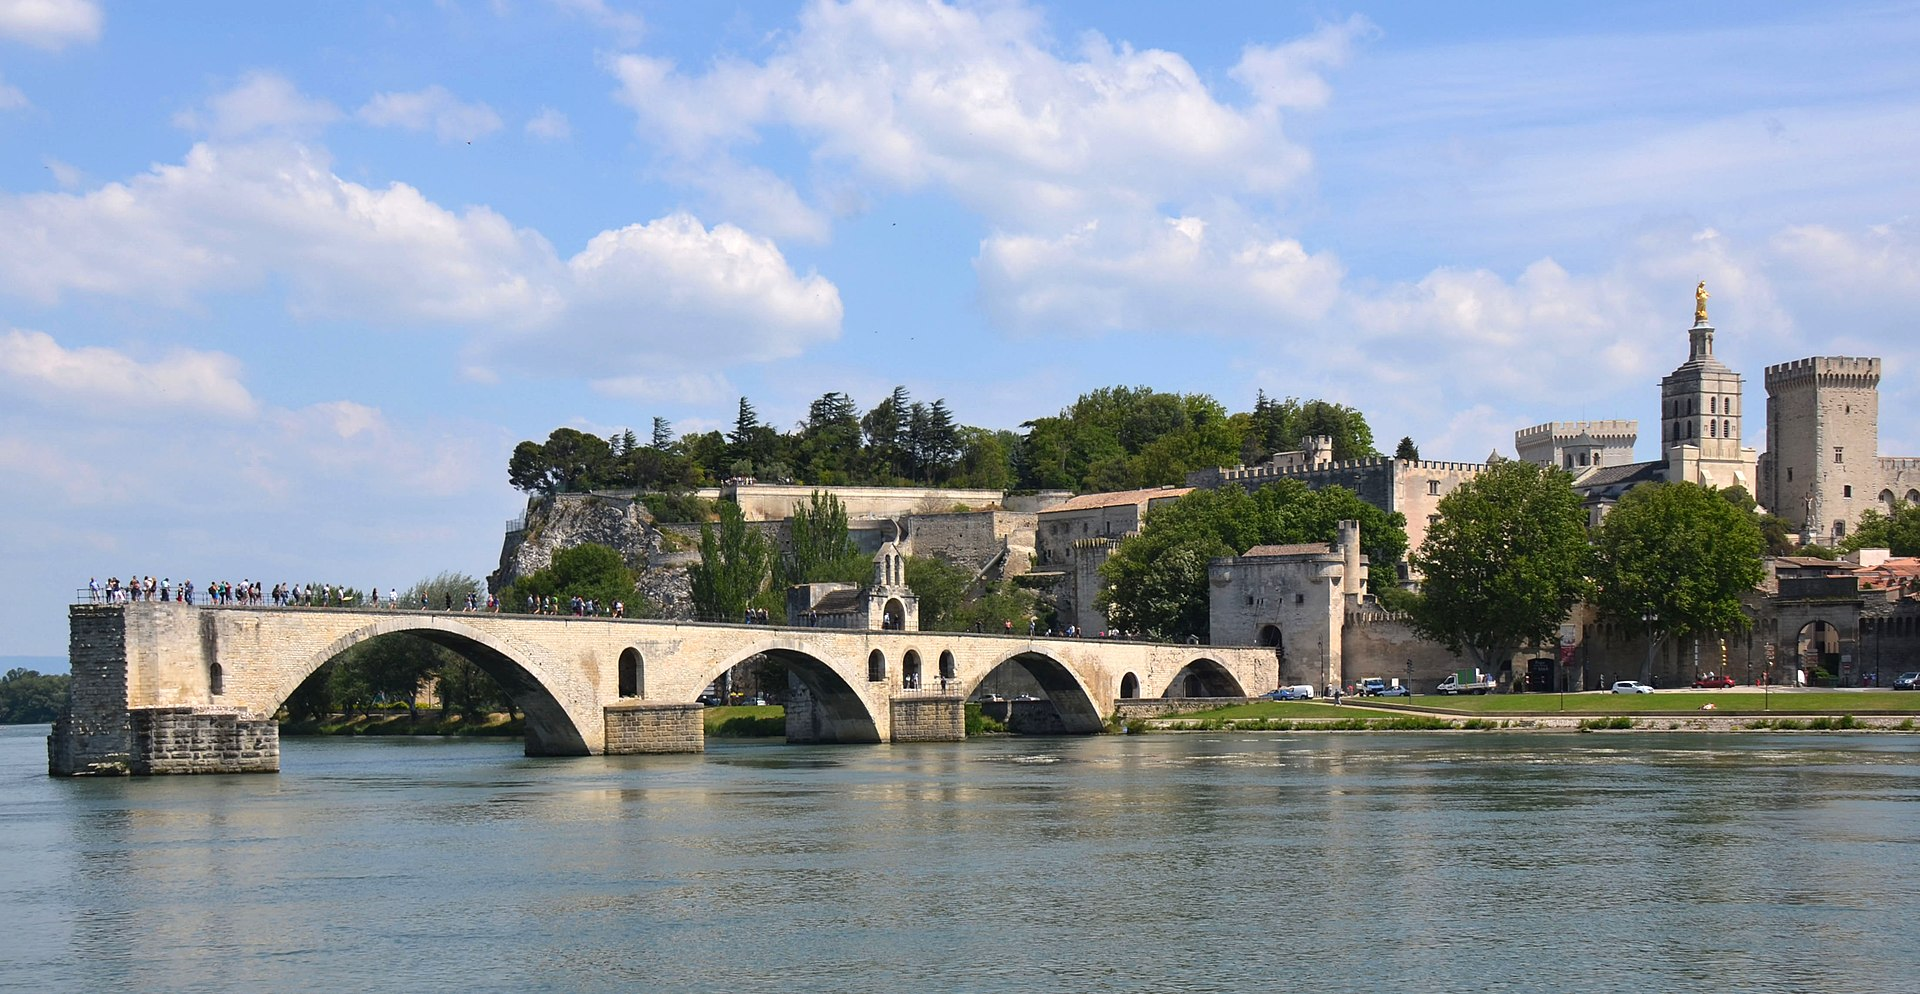 1920px-22sur_le_pont_d27avignon_on_y_danse22_is_the_famous_song2c_but_now_we_see_only_many_tourist_just_standing_there_-_panoramio